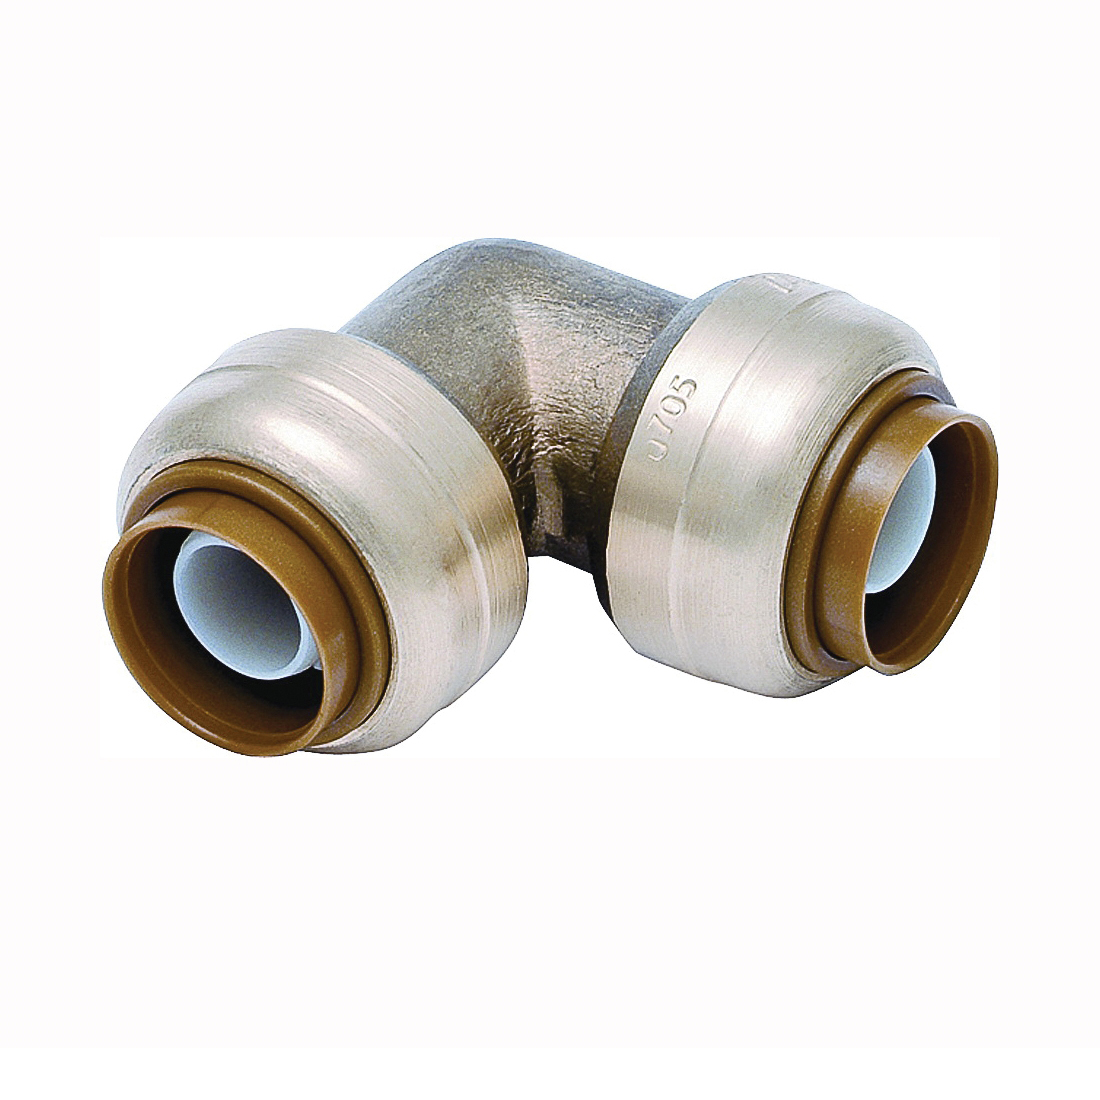 Picture of SharkBite U274LFA Pipe Reducing Elbow, 3/4 in, 1/2 in, 90 deg